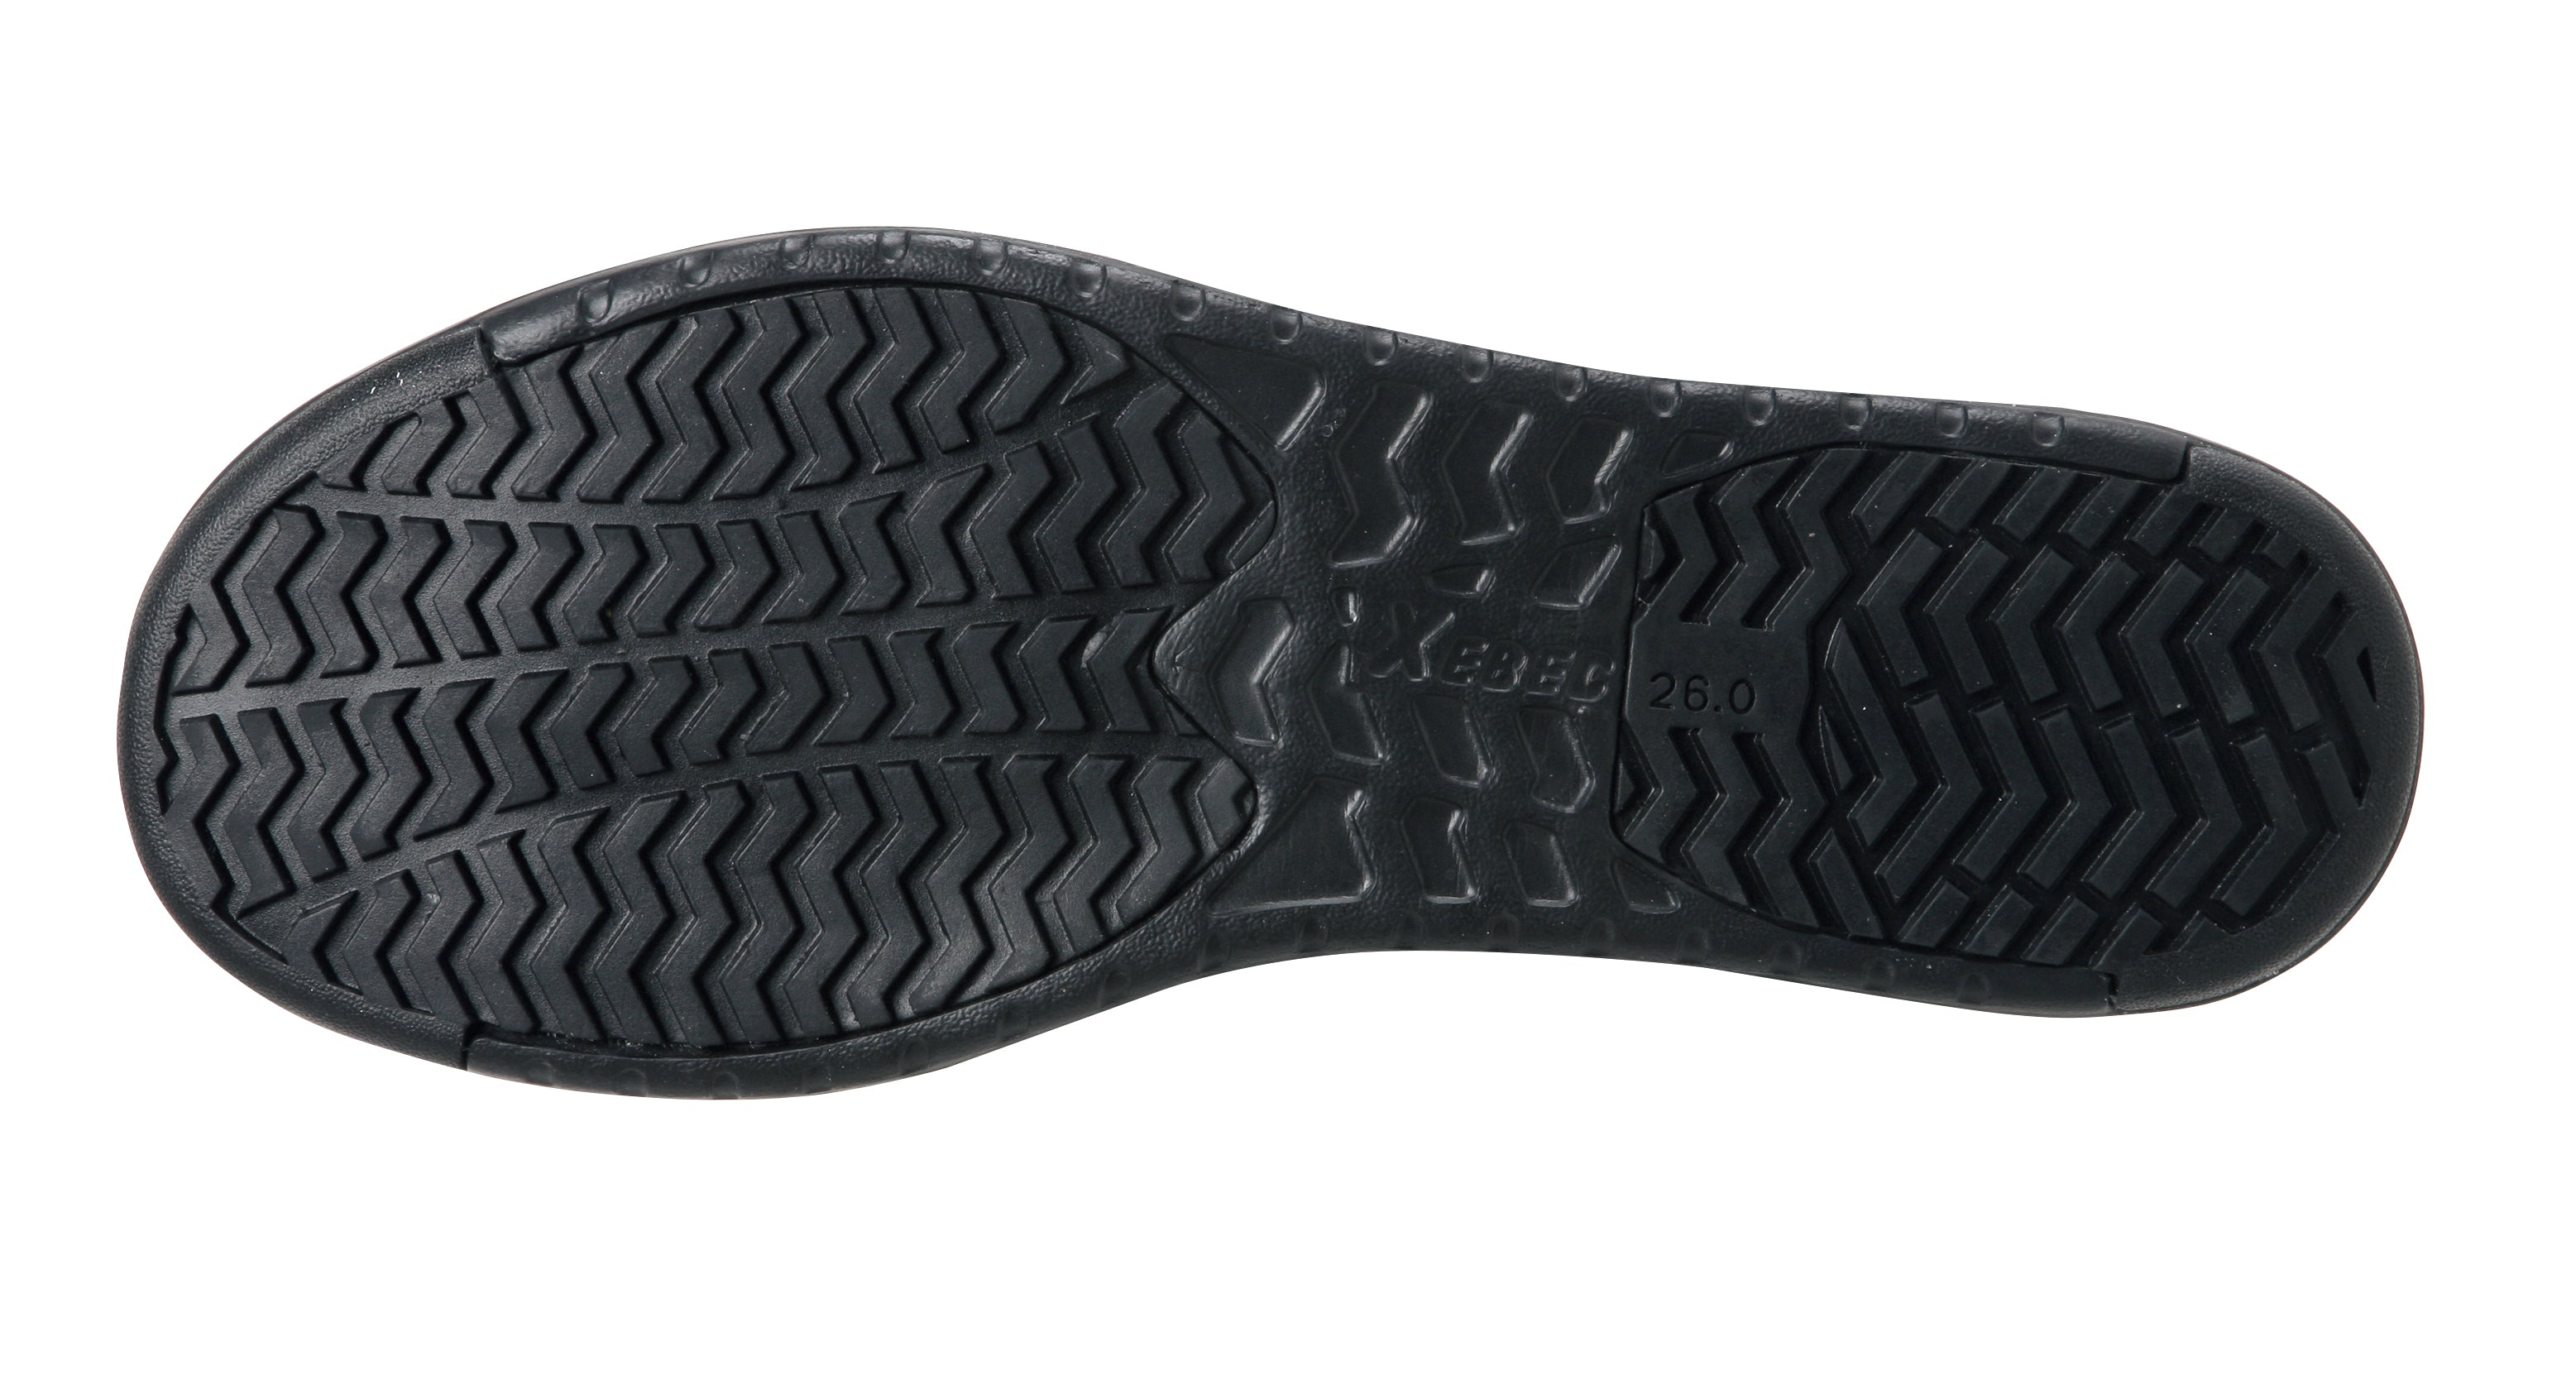 XEBEC 85114 Safety Shoes